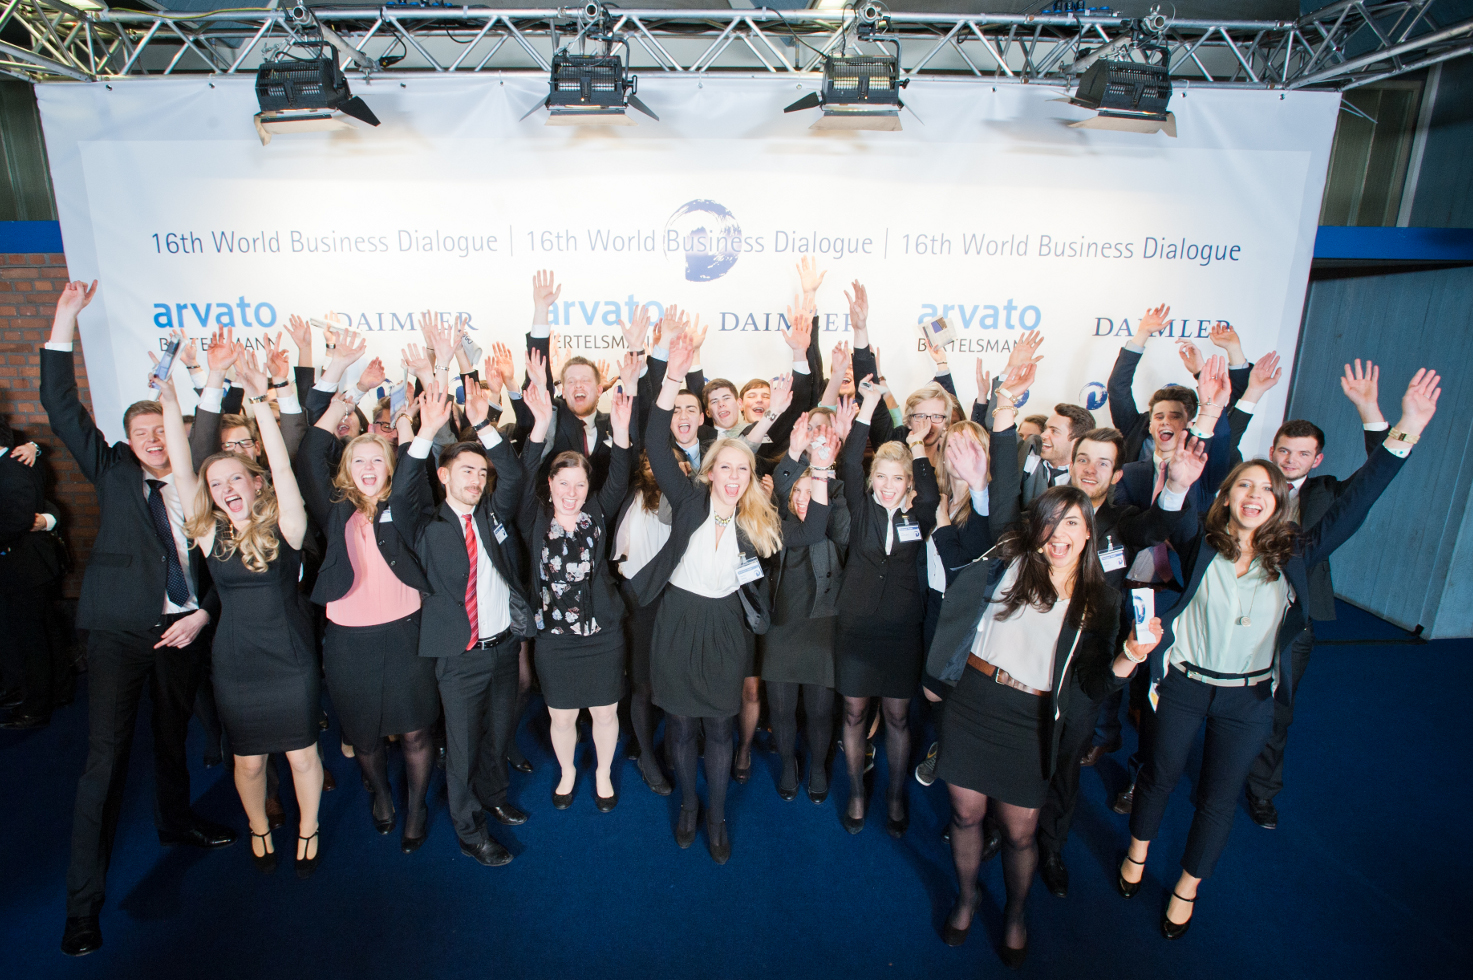 Apply to Attend the 17th World Business Dialogue in Germany (All-Expenses-Paid)